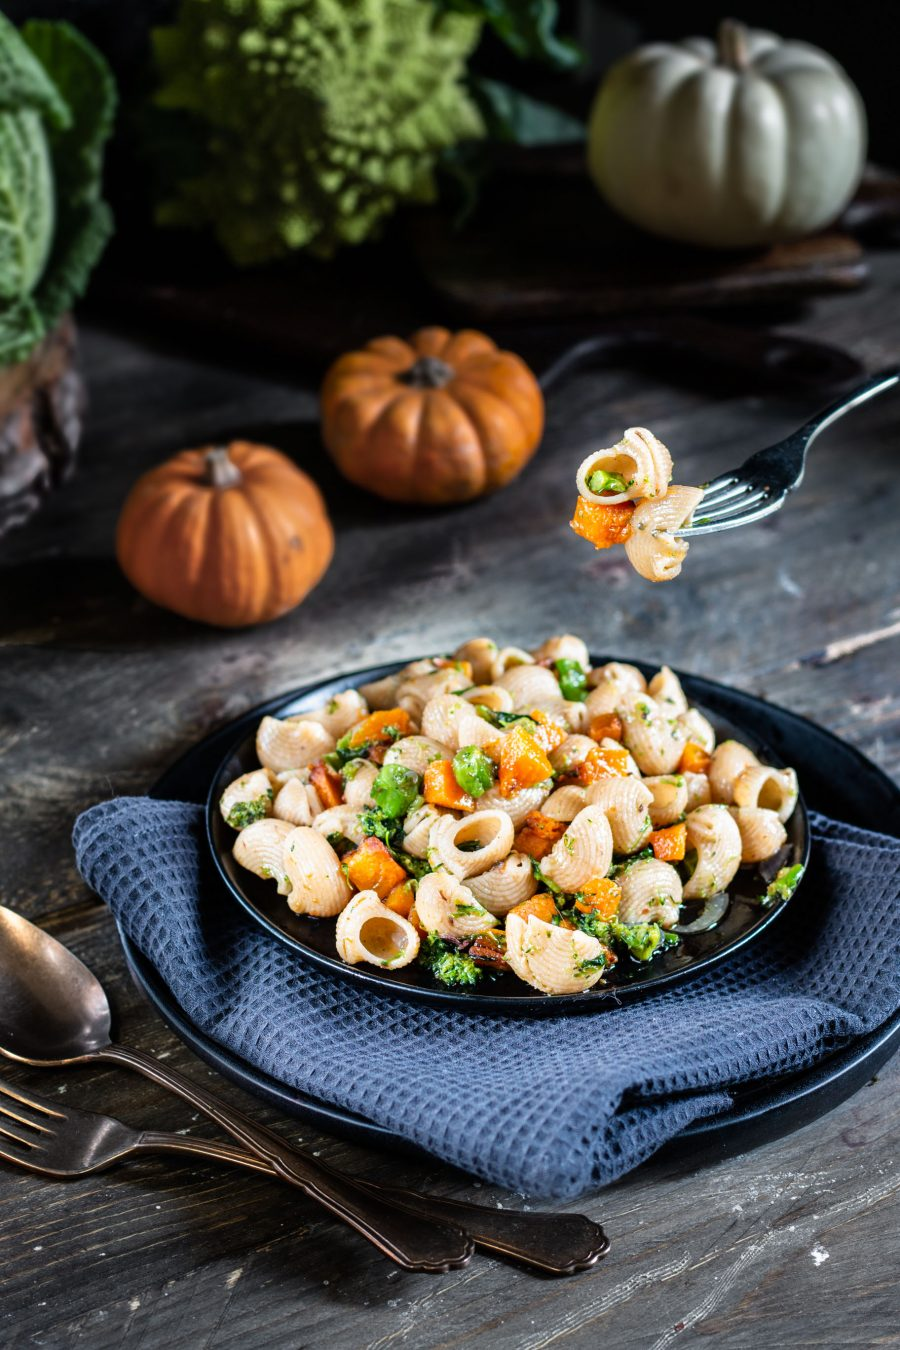 Pipe rigate pasta with romanesco broccolo and pumpkin